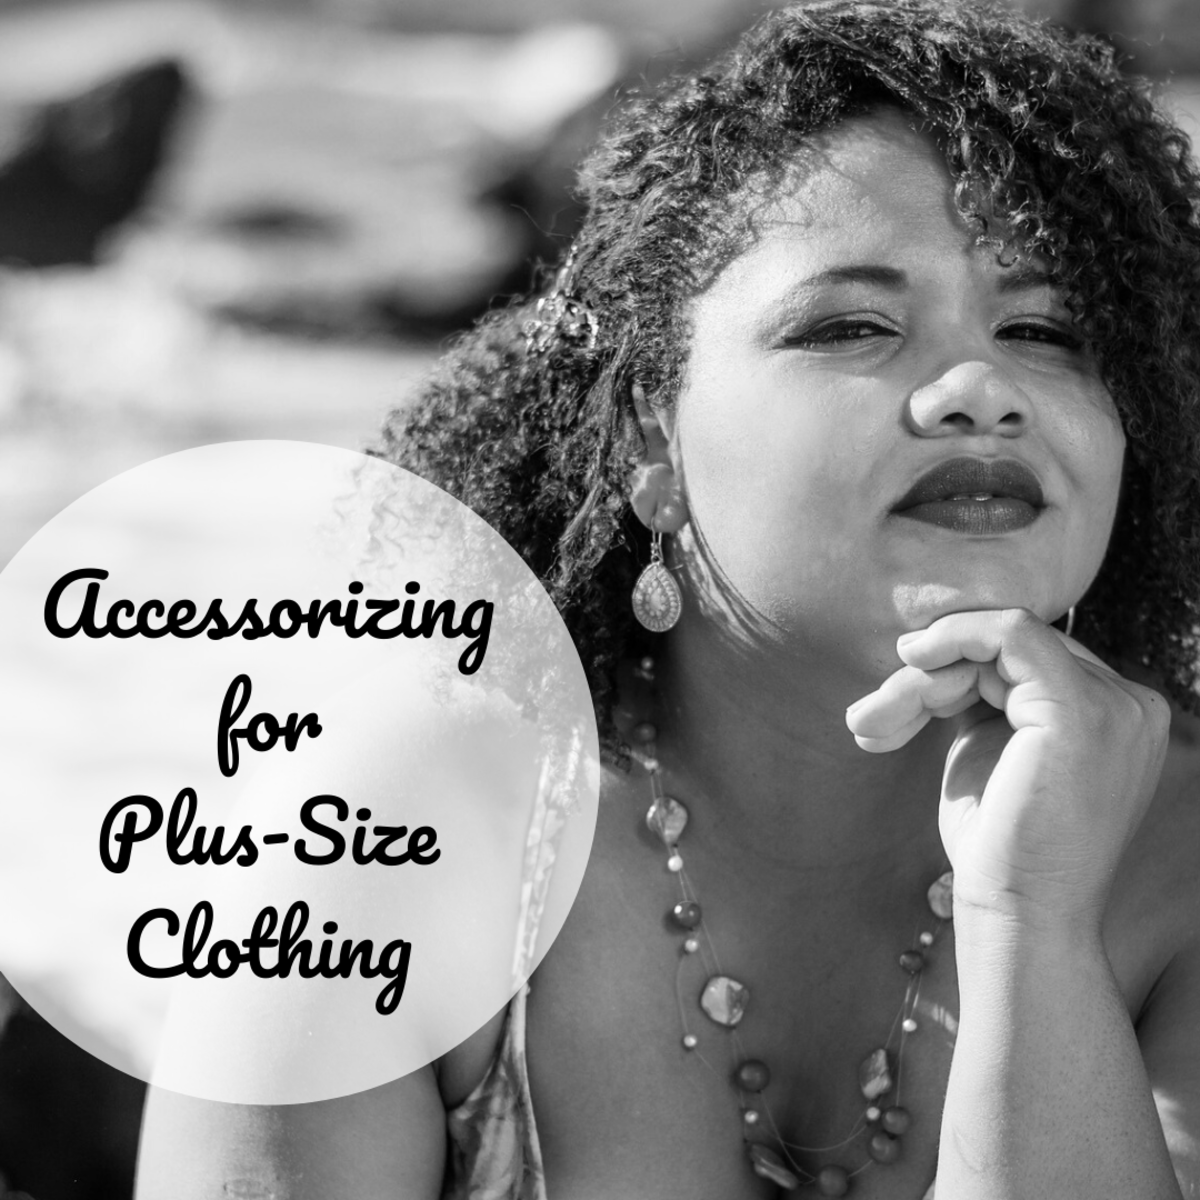 Get advice on jewelry, scarves, belts, purses and shoes for plus-size women.